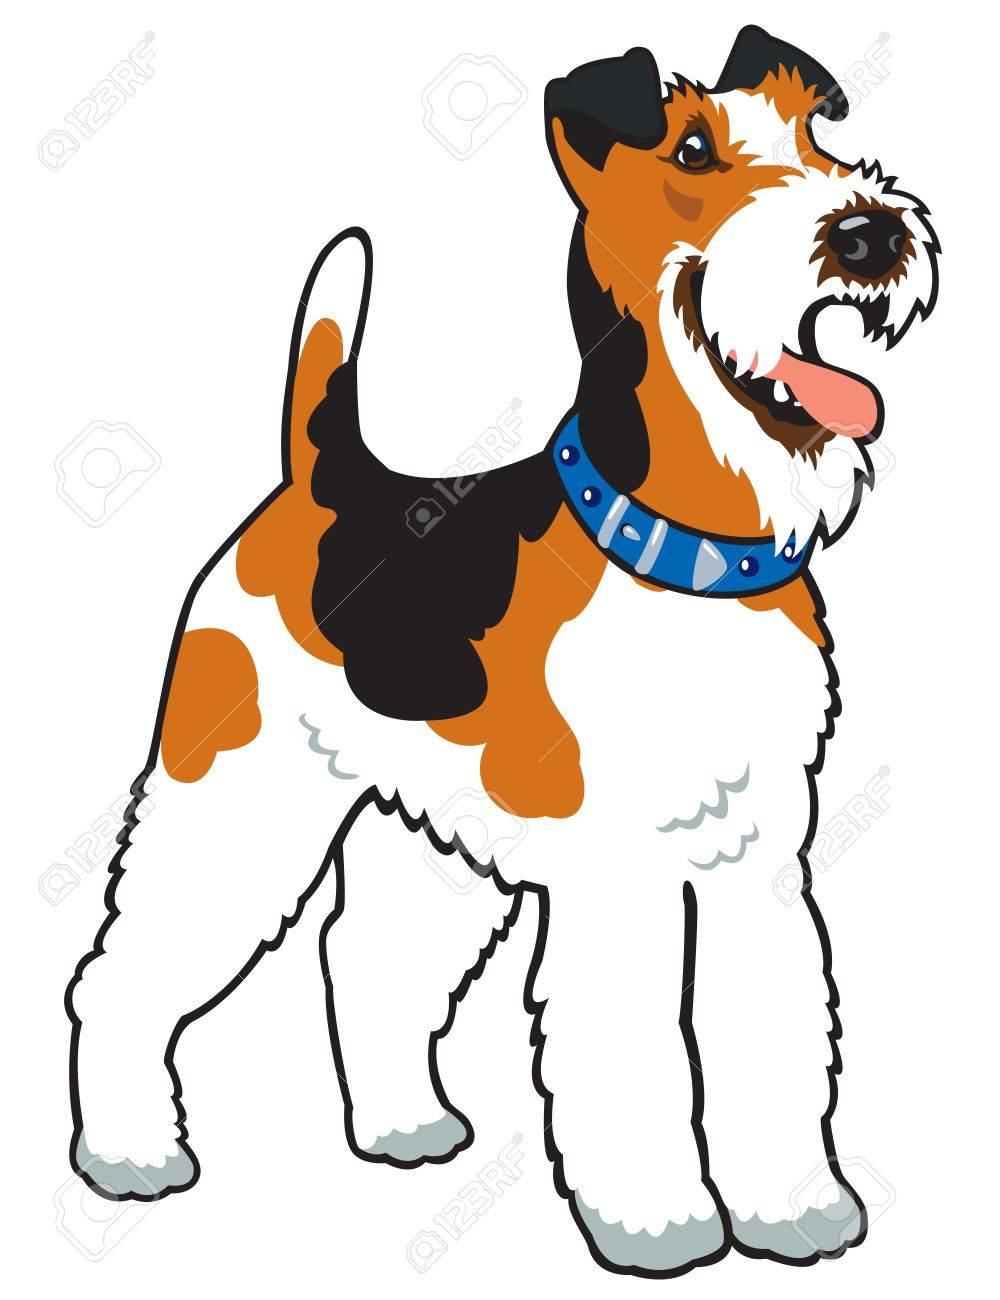 dog,fox terrier breed,vector picture isolated on white background,standing pose - 16526639